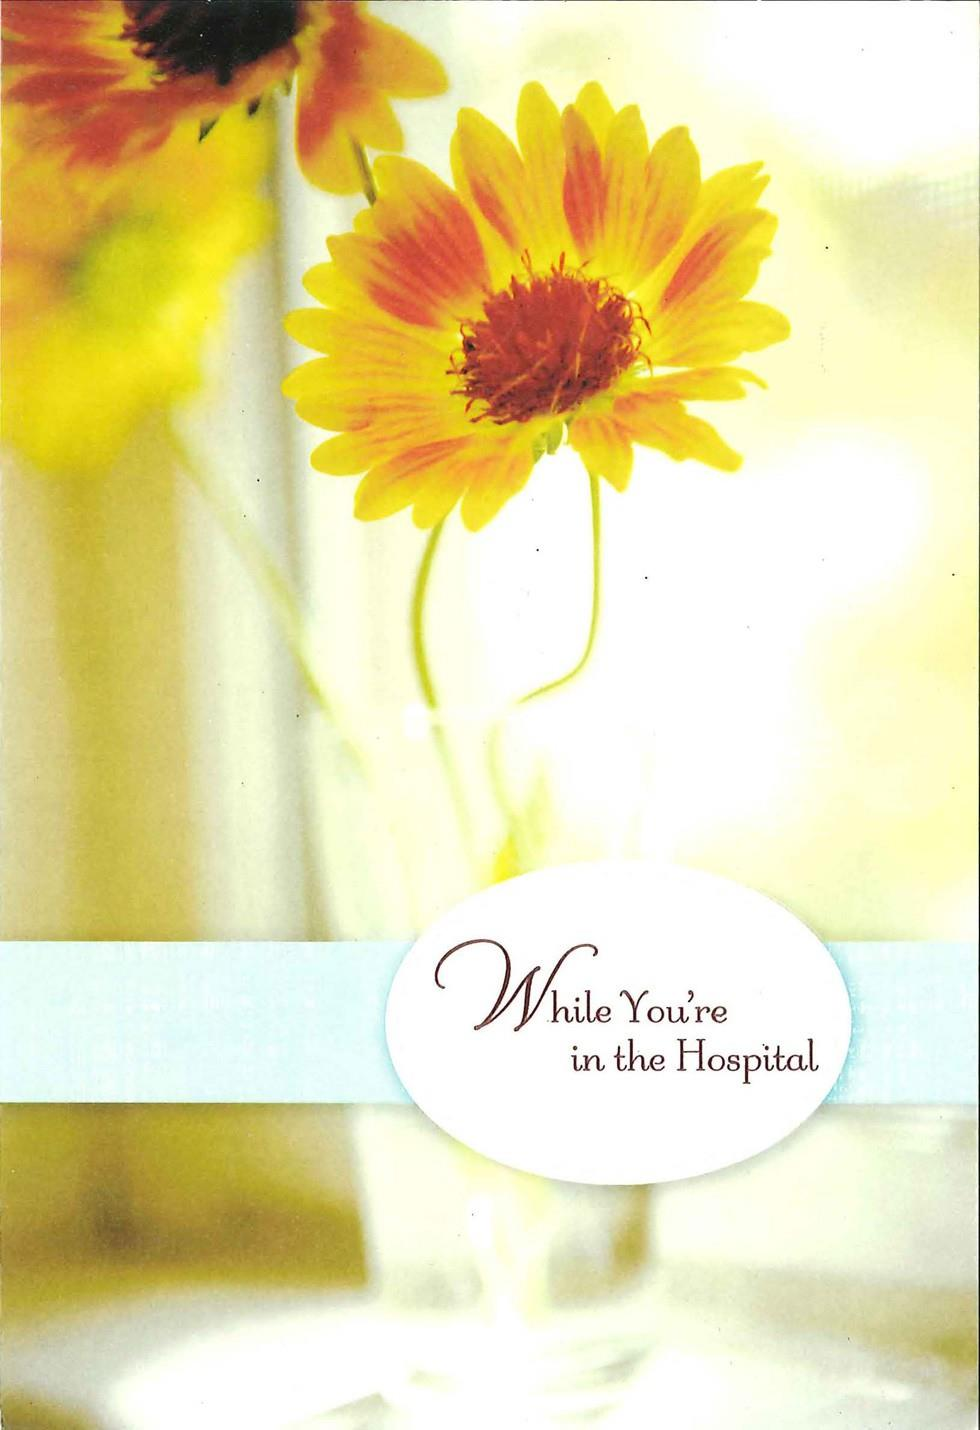 While Youre in the Hospital Get Well Card  Greeting Cards  Hallmark